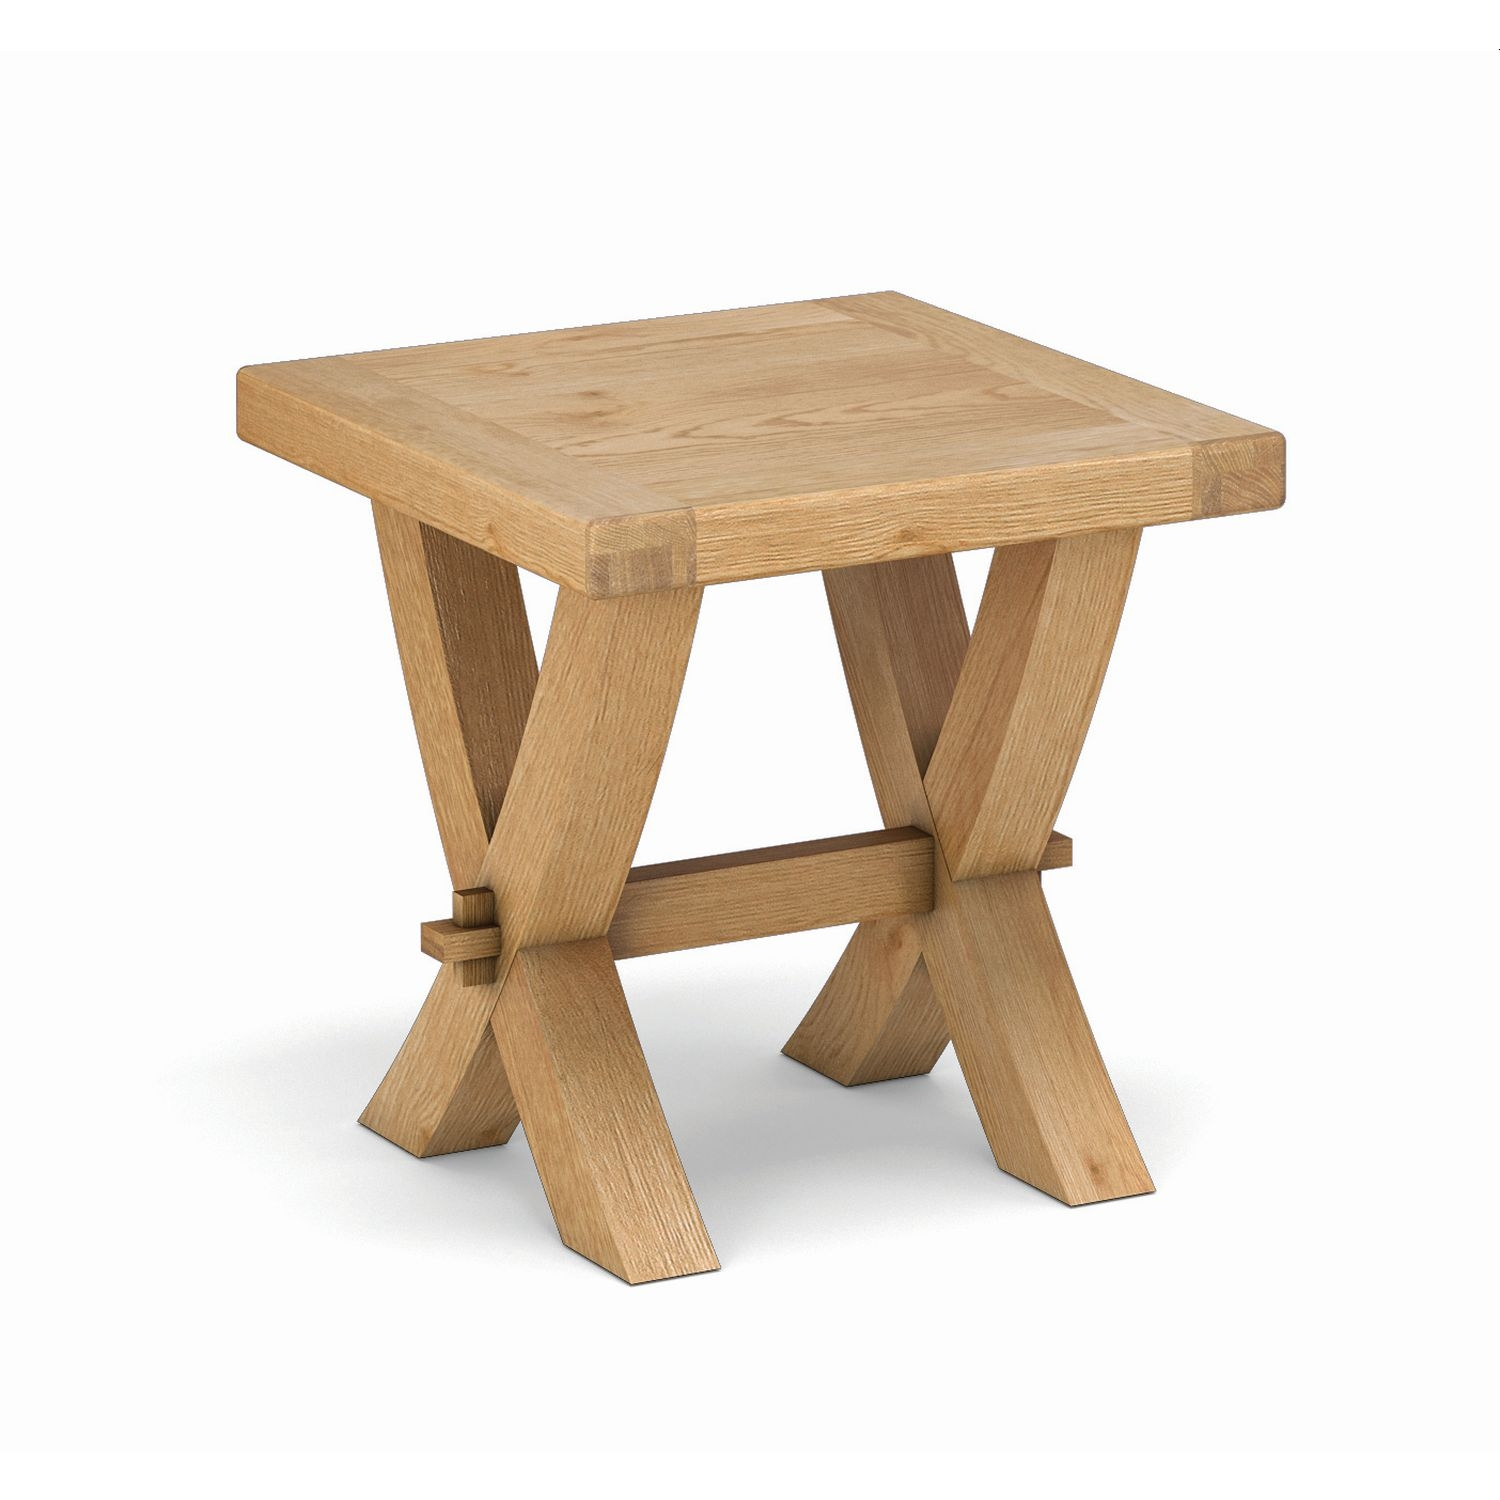 Image of Fairford Cross Leg Side Table